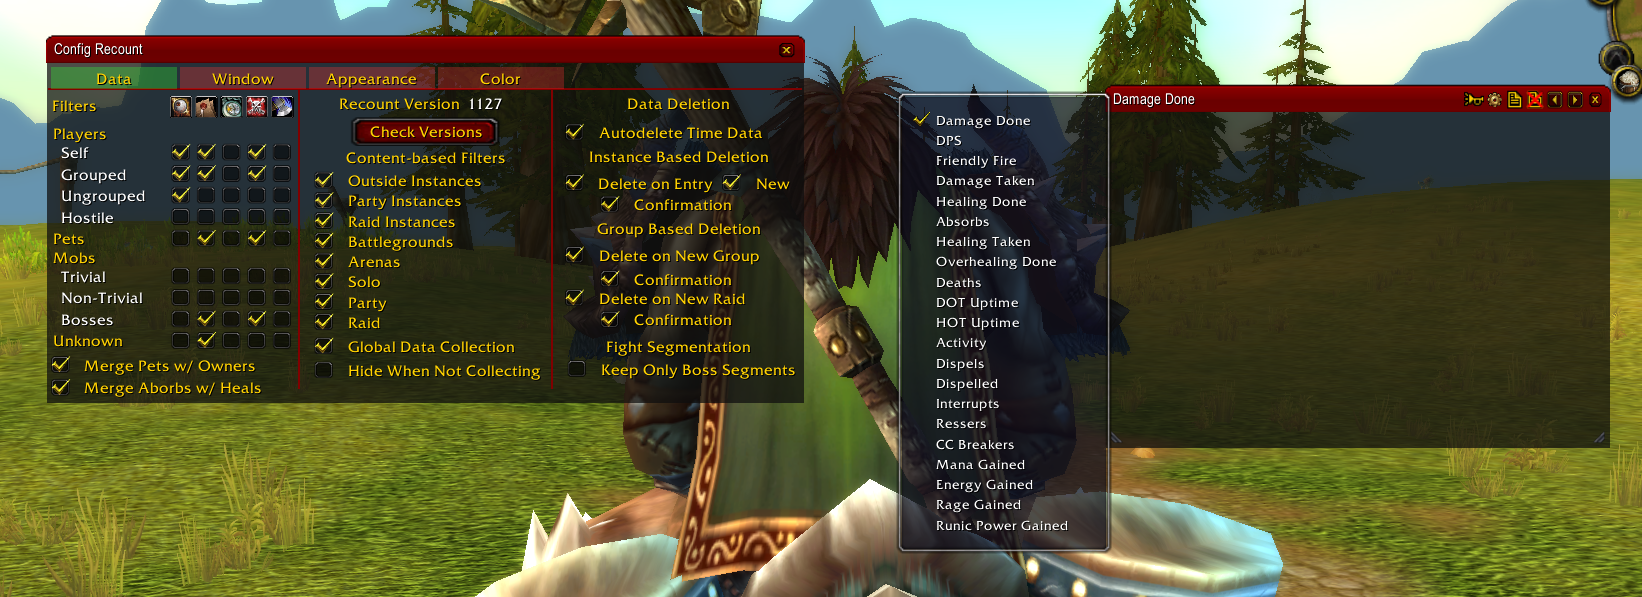 Recount - Best WoW Addons